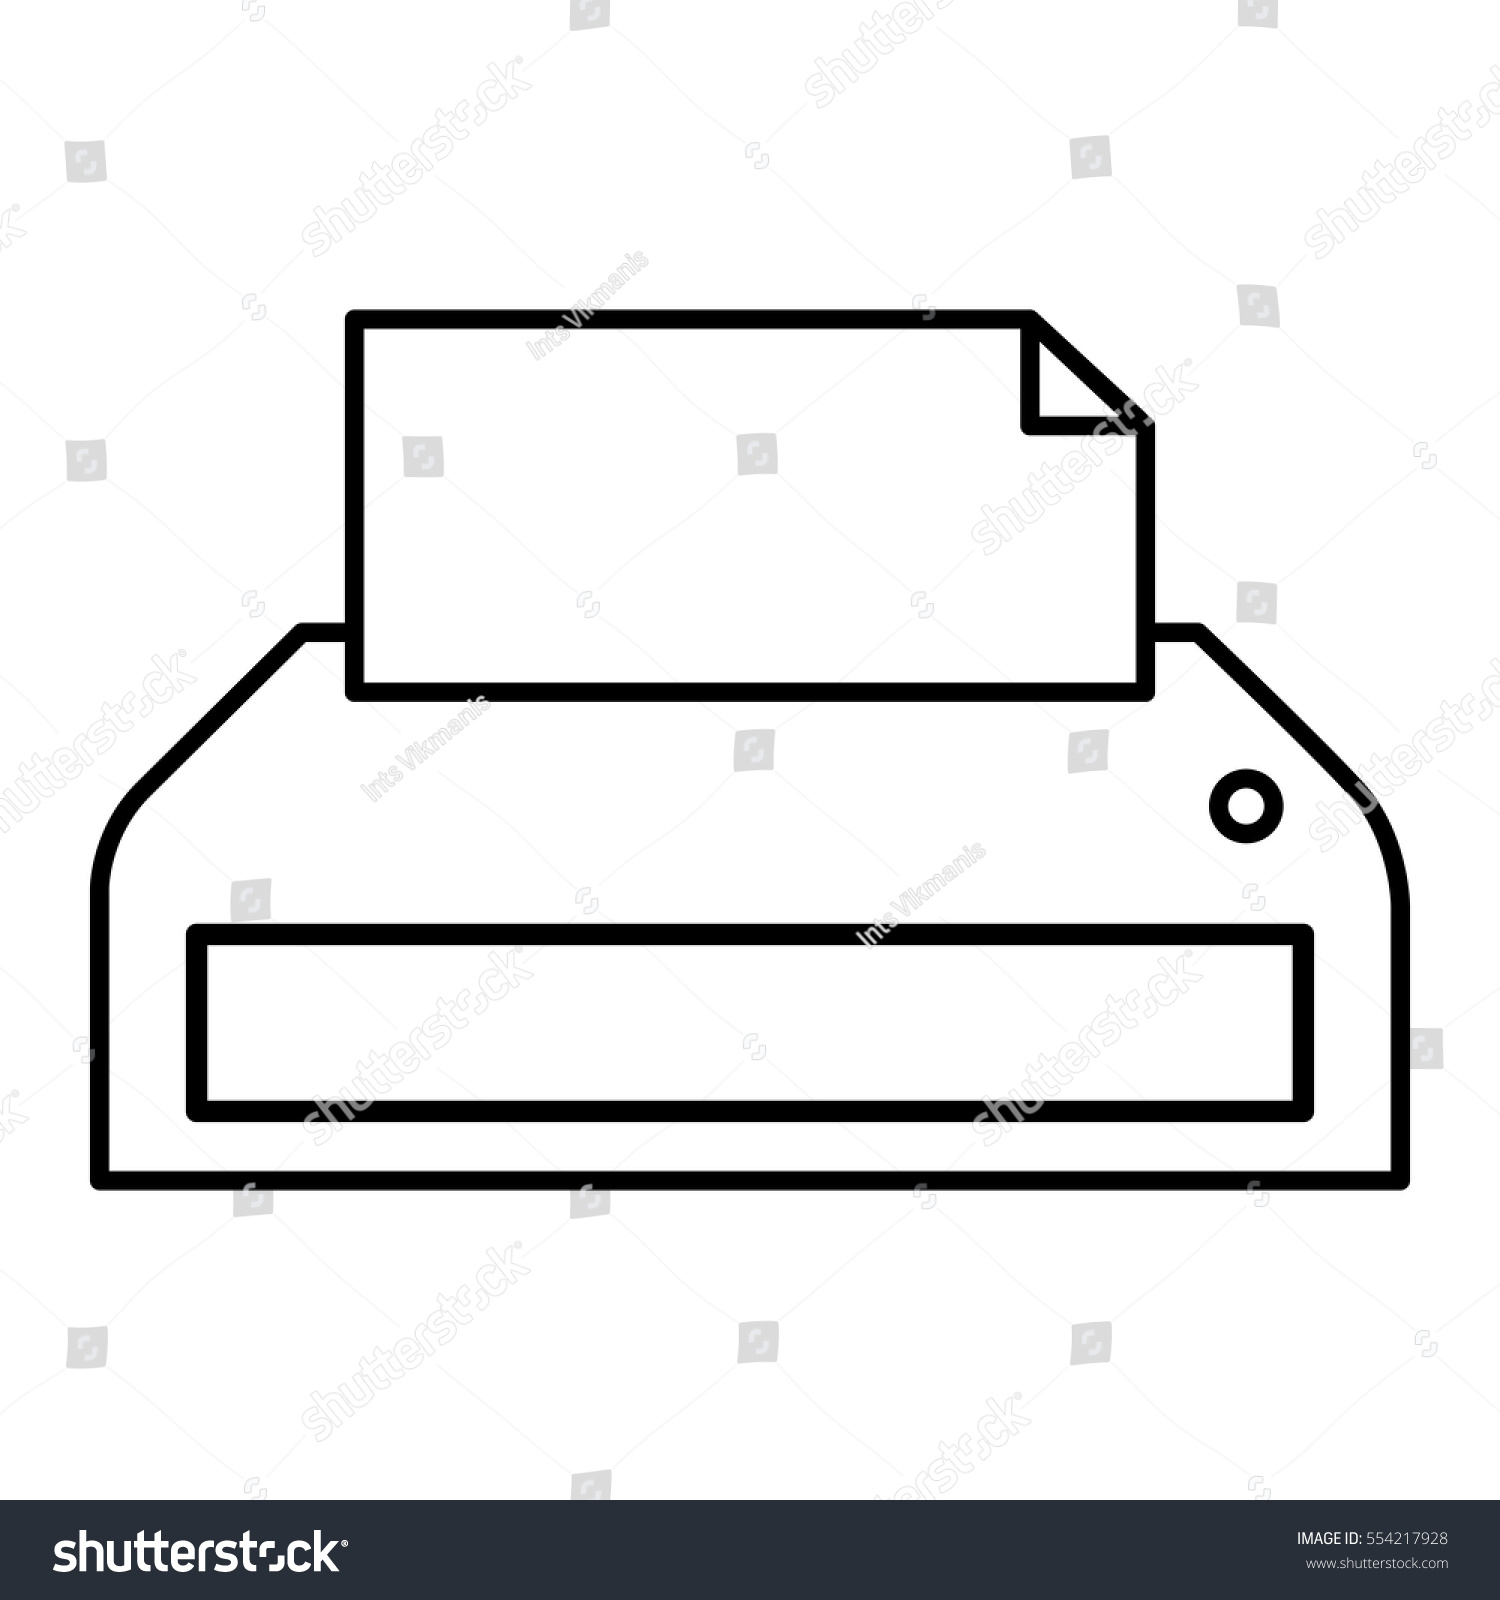 printer or fax machine with half printed page  linear vector illustration